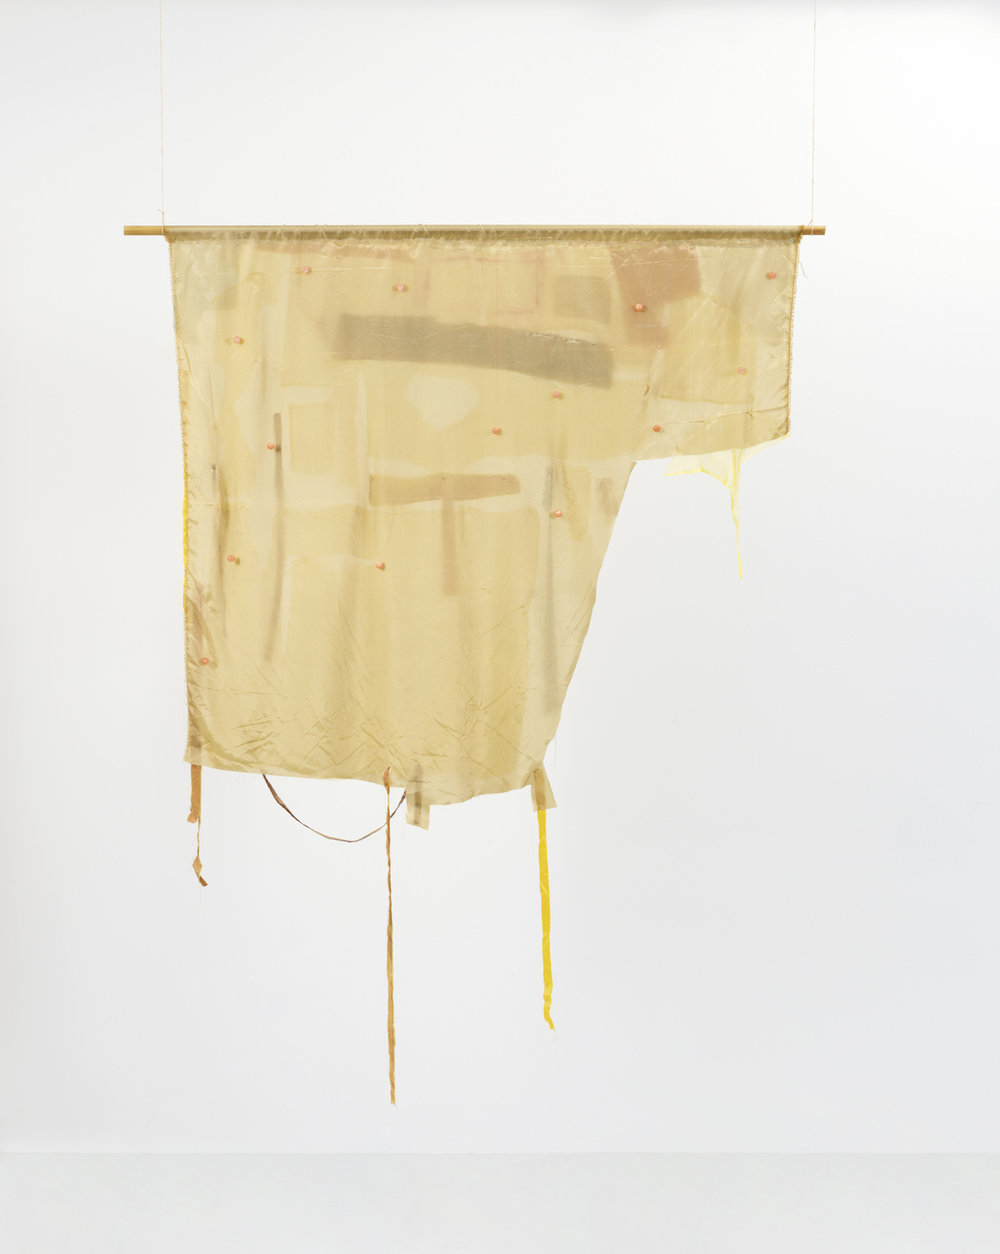 - PRICE: € (EUR) 4.000. Peter Brandt. Yes and More No, 2016-17. Sculptural two-sided banner, applicated fabric, embroidery, pearls, oil paint, pencil and wood. 193 x 135 x 2 cm.